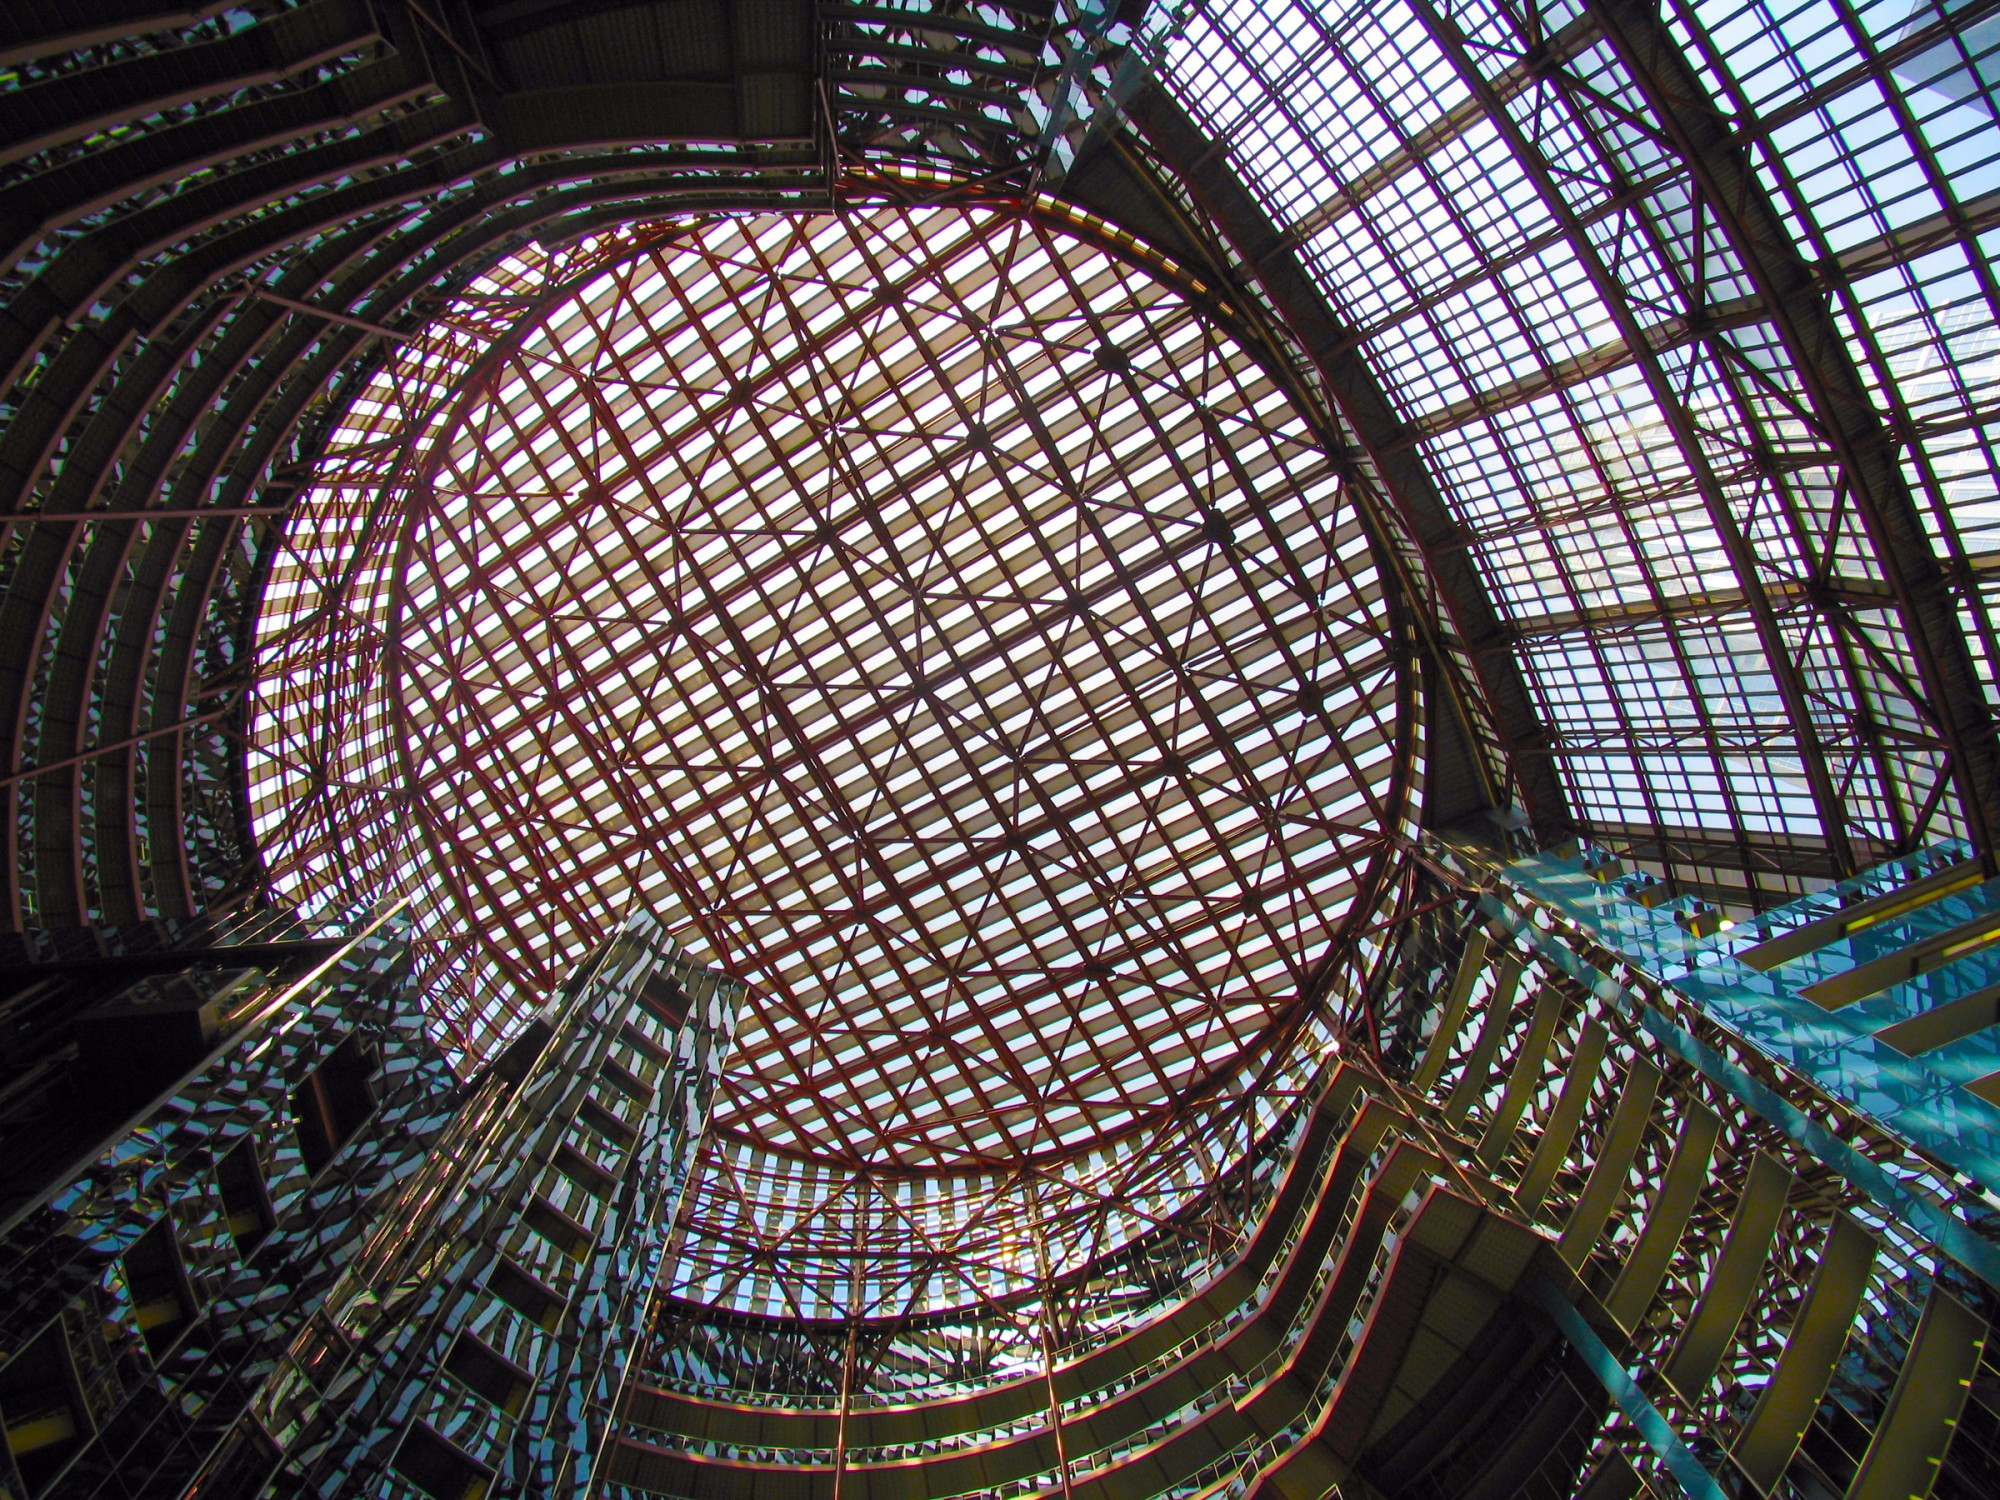 thompson center · buildings of chicago · chicago architecture